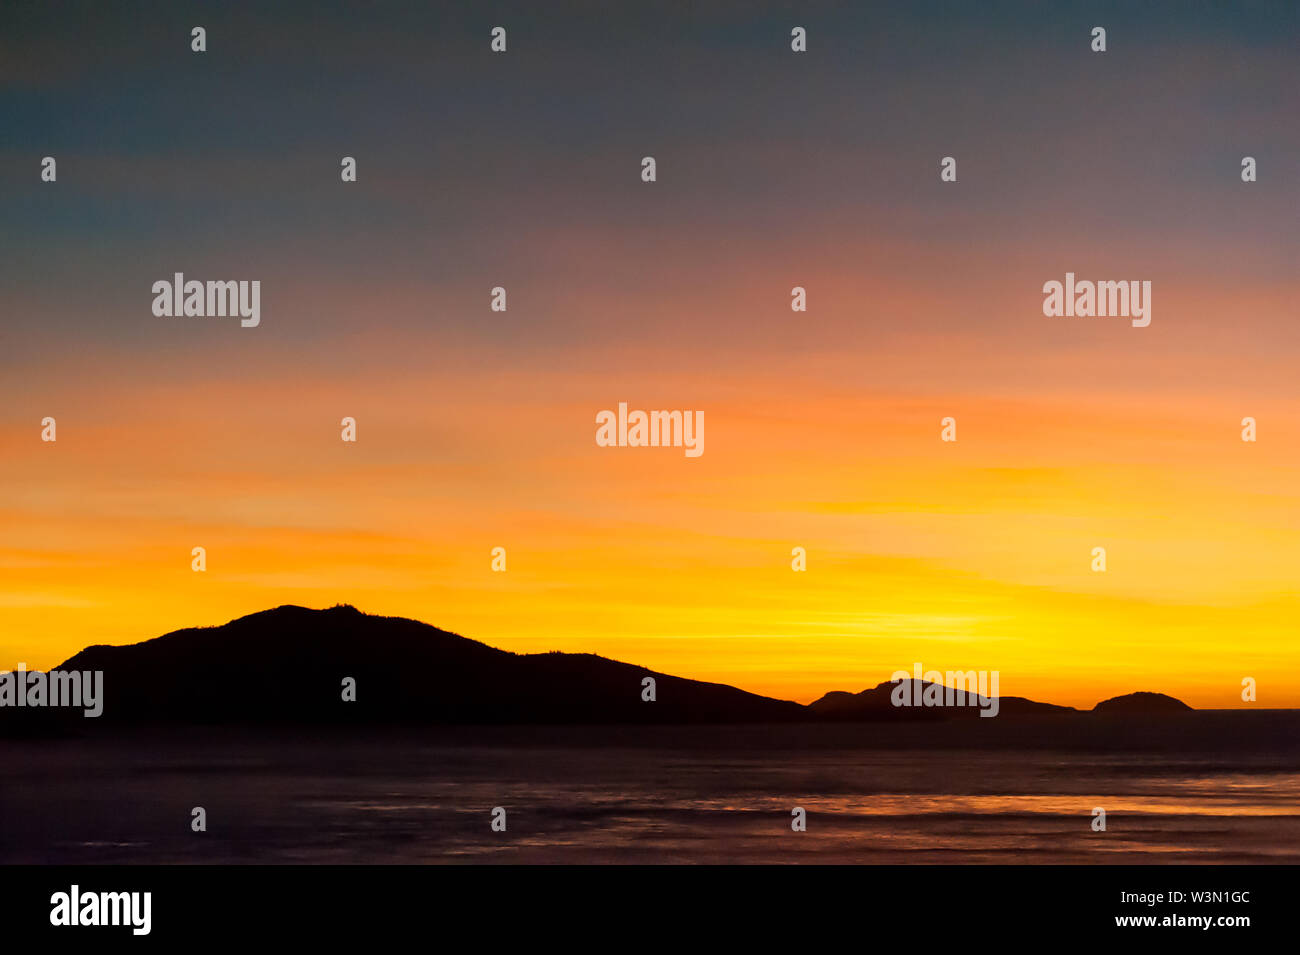 Hills silhouetted in beautiful orange and yellow sunrise, water in foreground - Stock Image